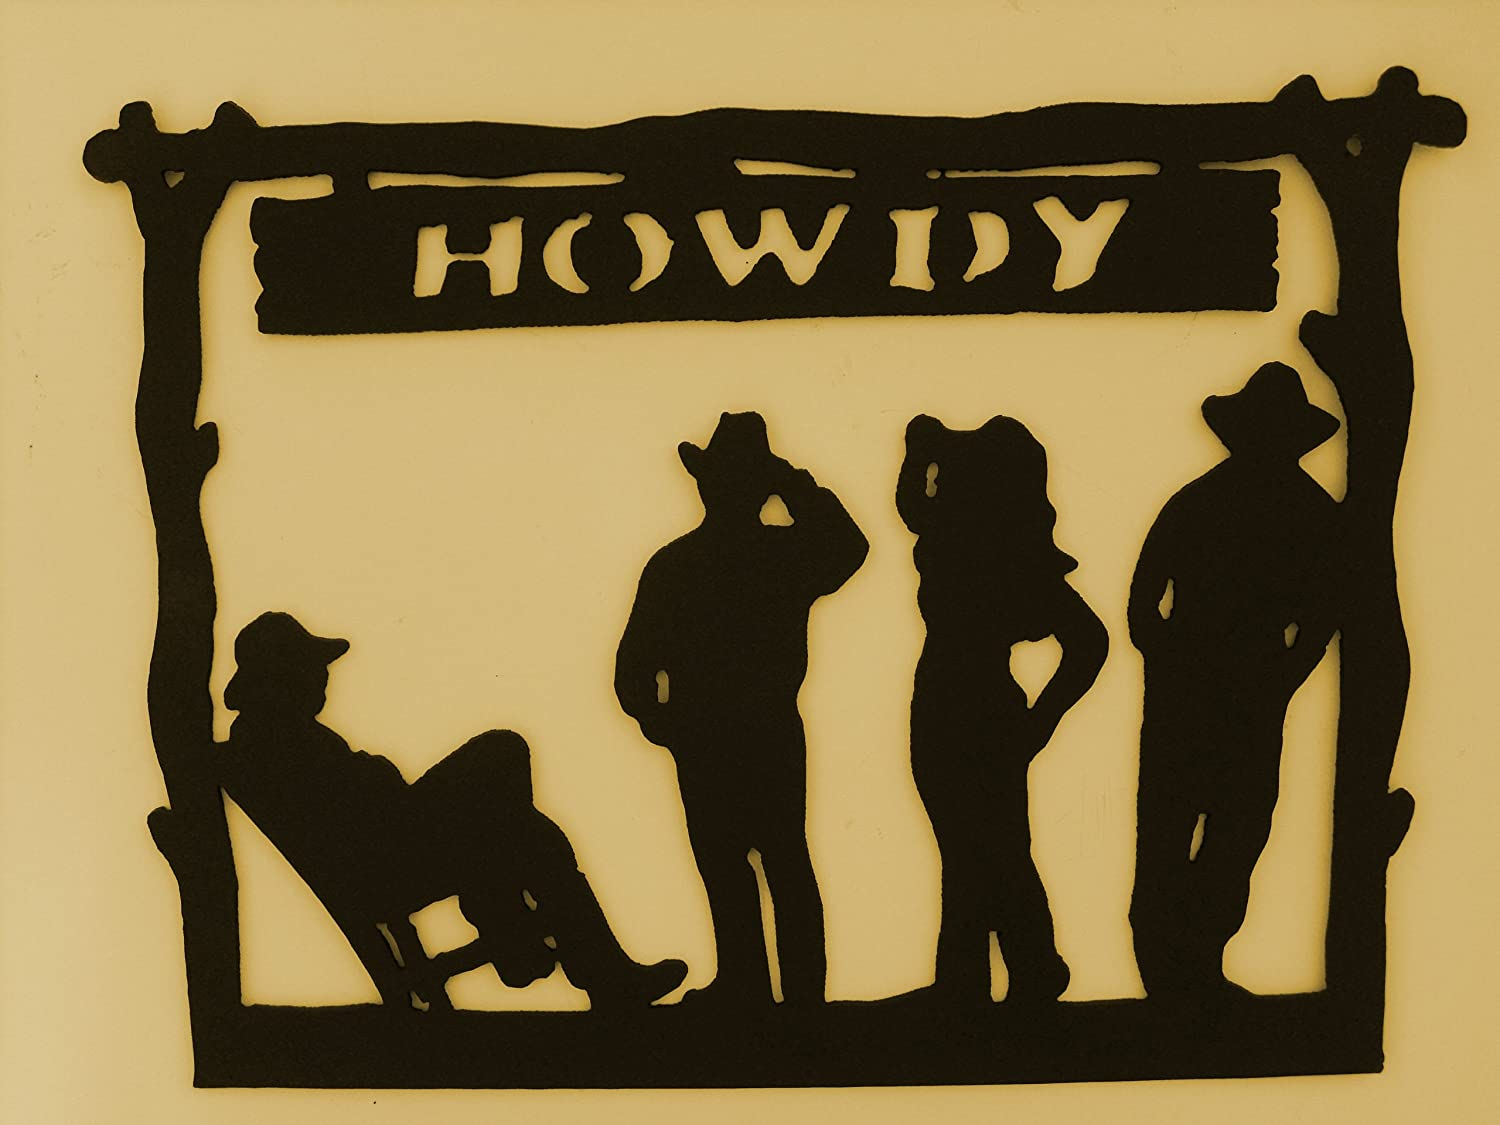 Amazon.com: Welcome Sign Howdy,Western,Metal Art,Cowboy,Ranch ...